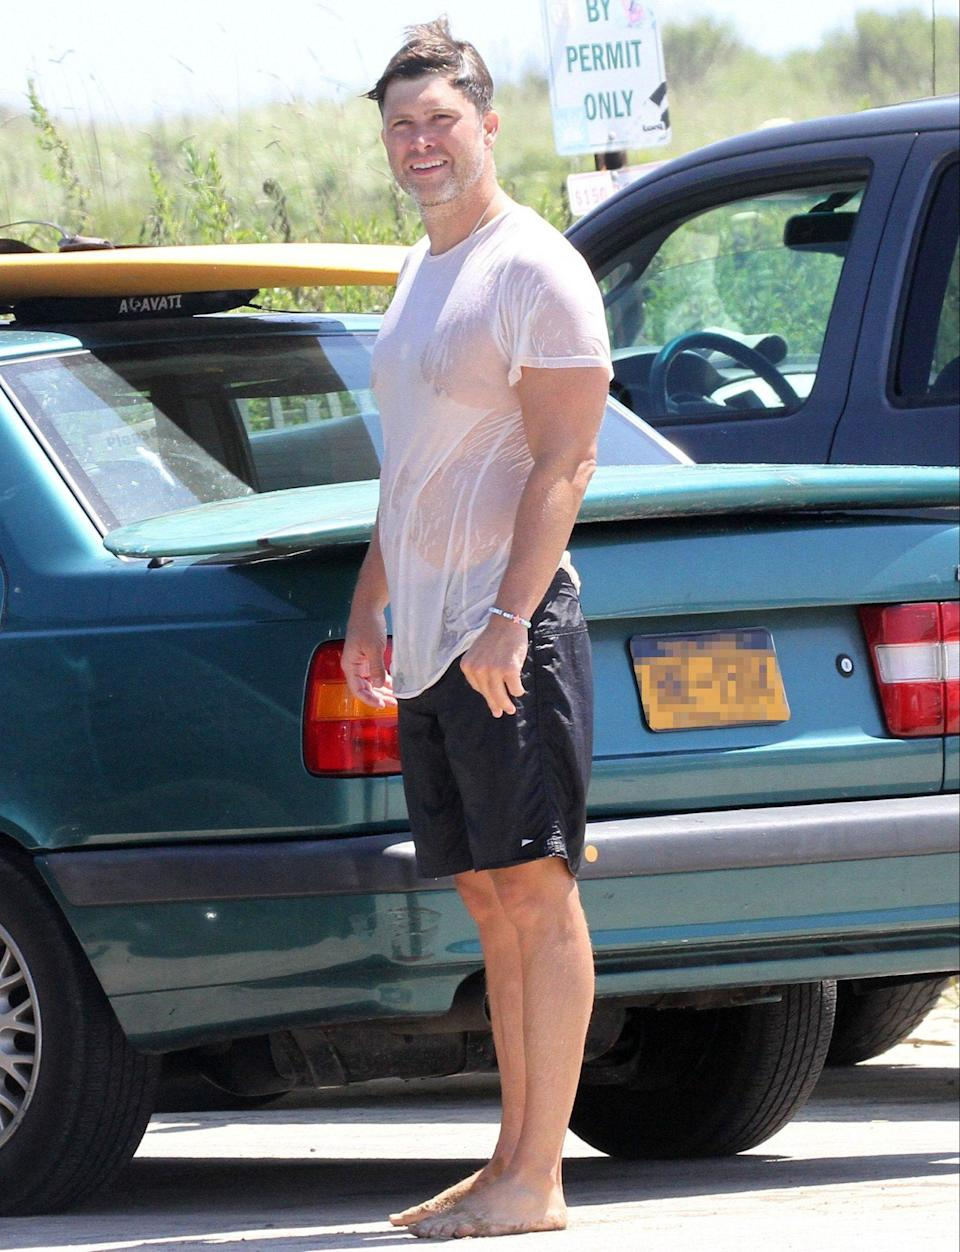 <p>Colin Jost gets ready to hit the road on Tuesday after surfing in The Hamptons, New York.</p>